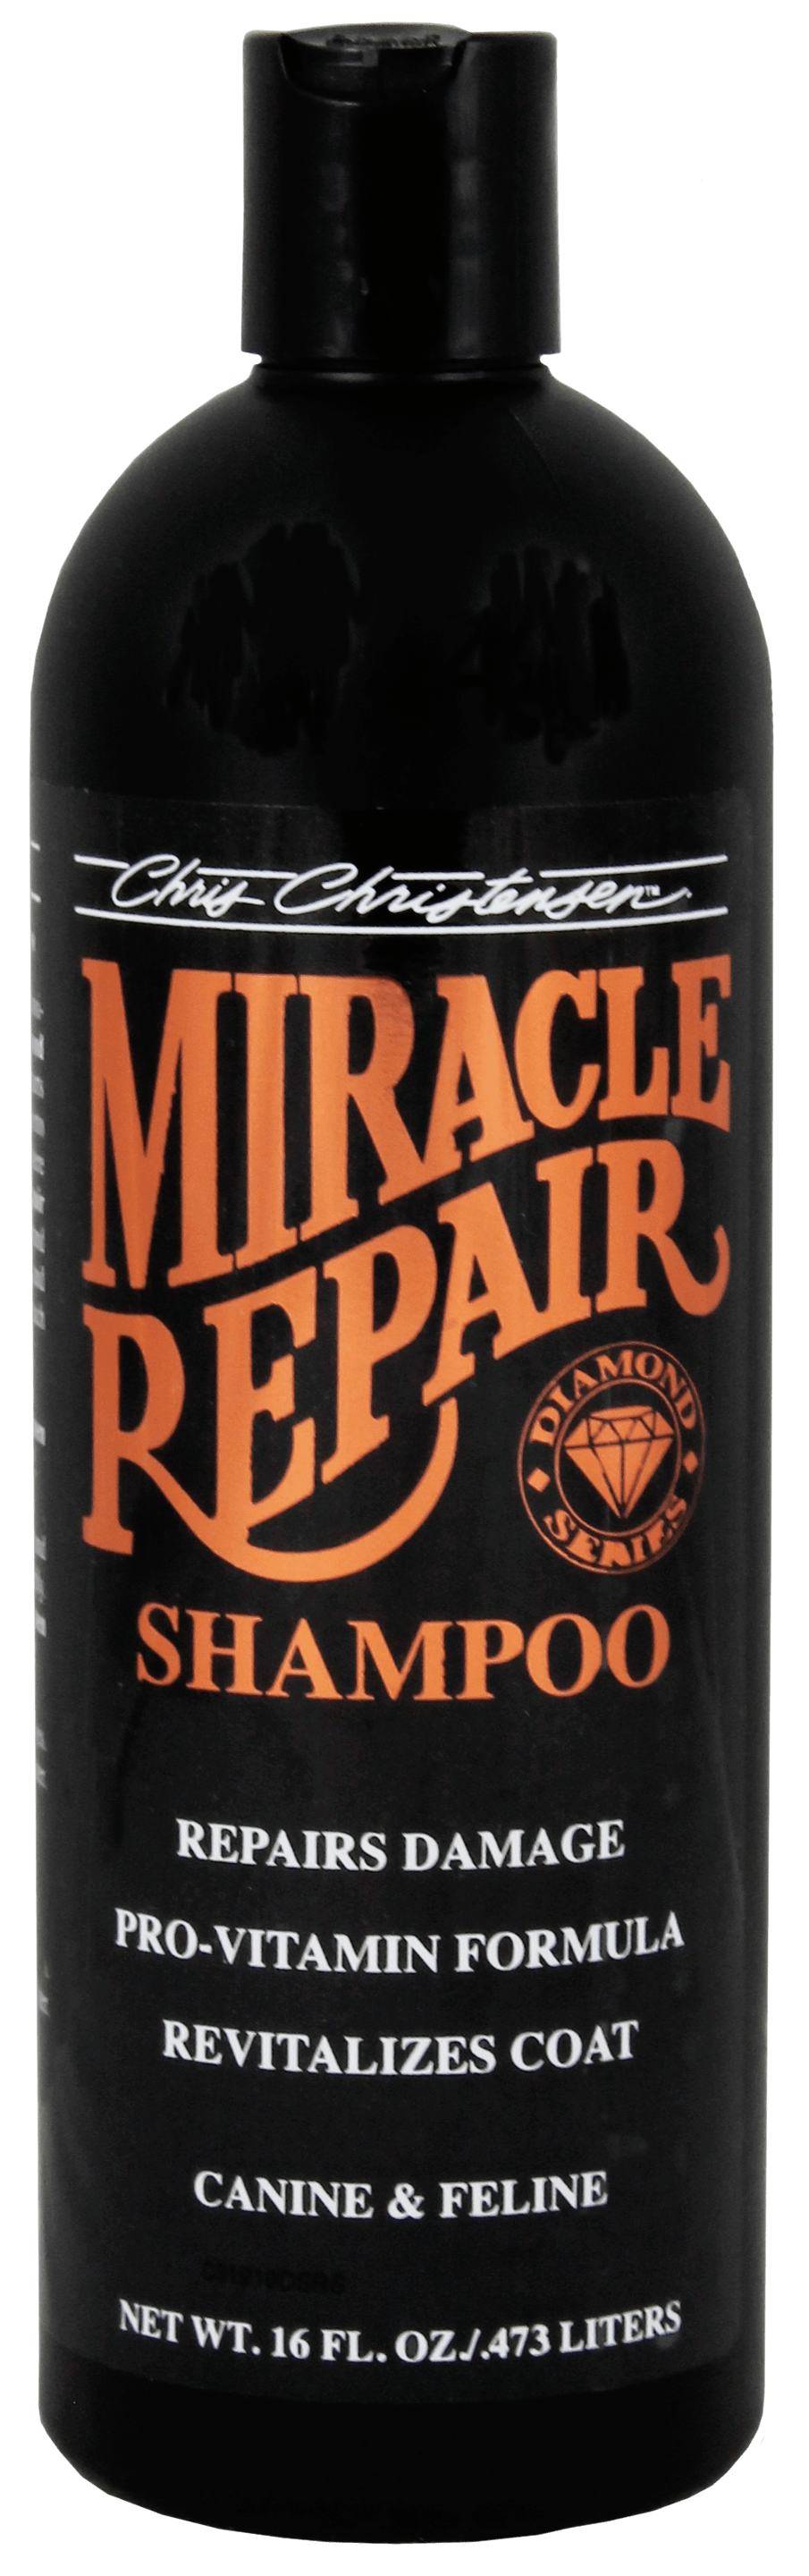 CC - Diamond Series Miracle Repair Shampoo